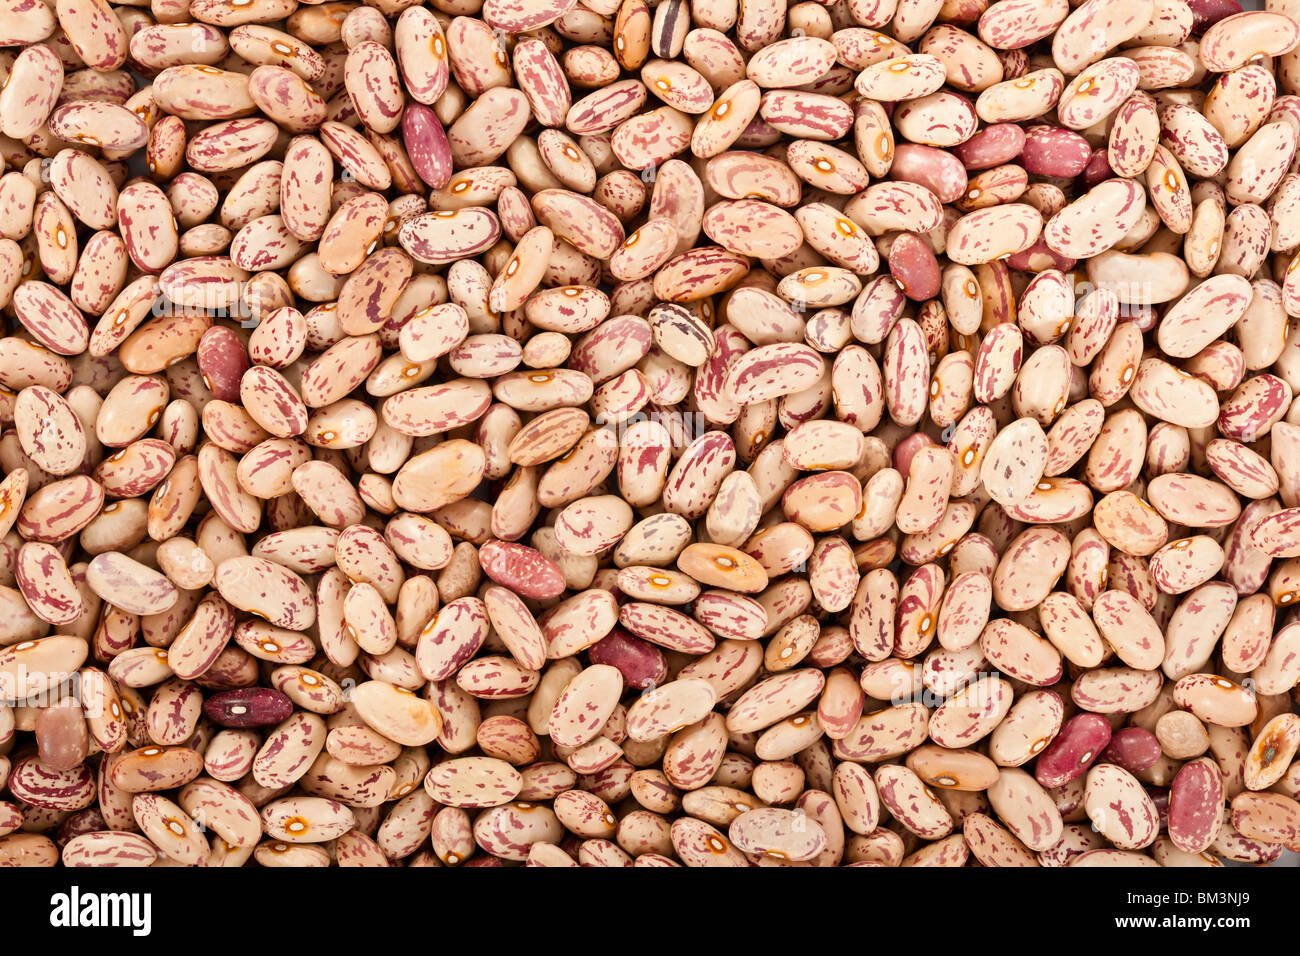 Pinto beans or mottled beans in a background - Stock Image